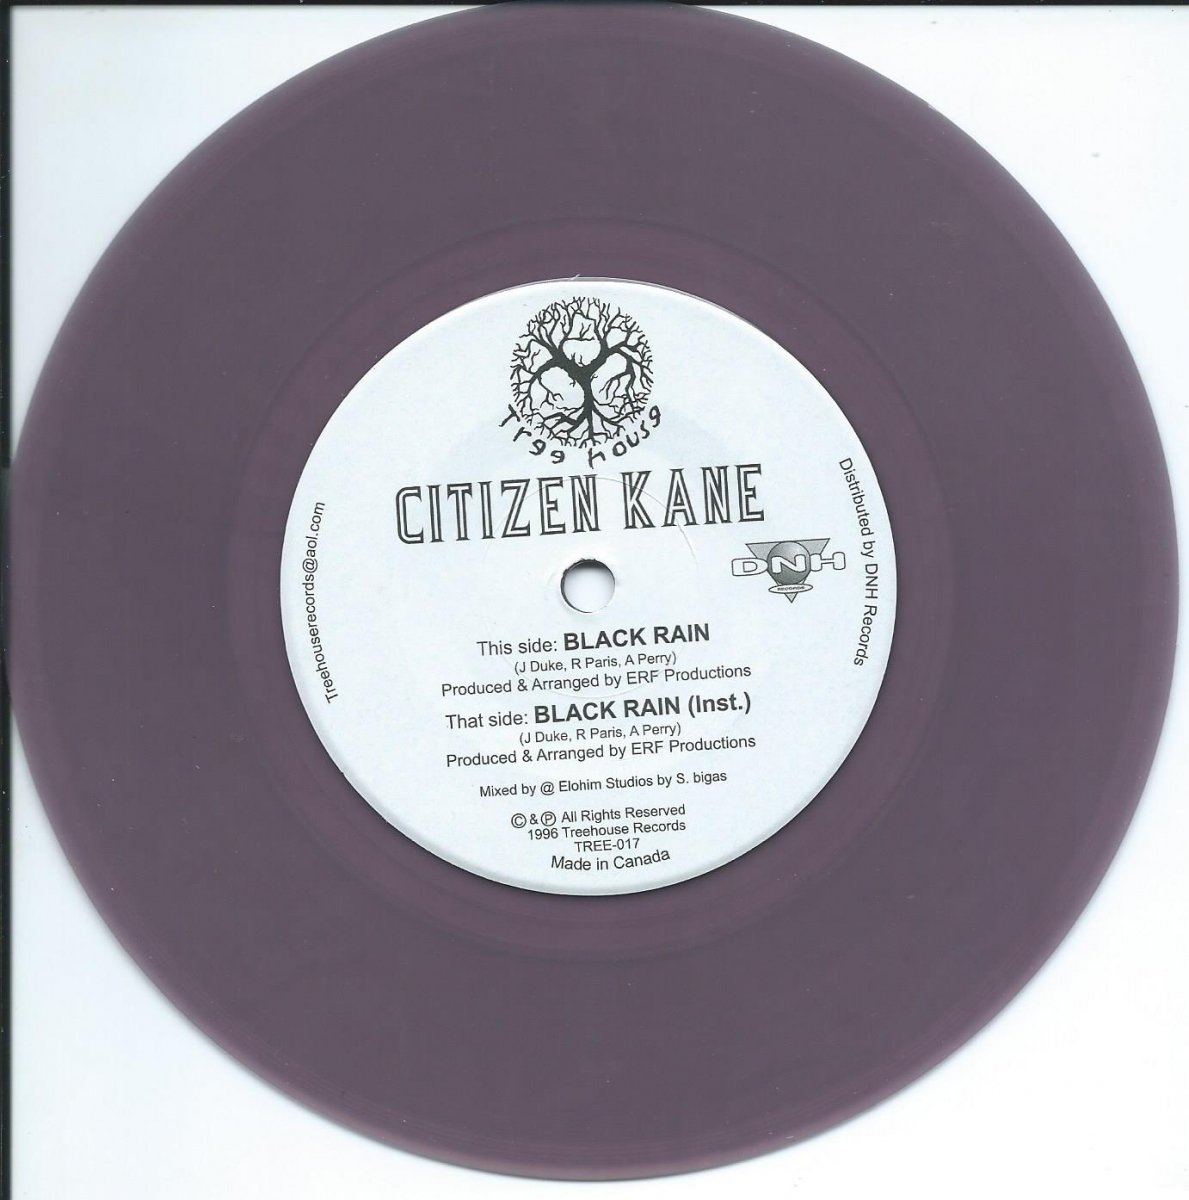 <img class='new_mark_img1' src='https://img.shop-pro.jp/img/new/icons15.gif' style='border:none;display:inline;margin:0px;padding:0px;width:auto;' />CITIZEN KANE / BLACK RAIN - PURPLE VINYL (7